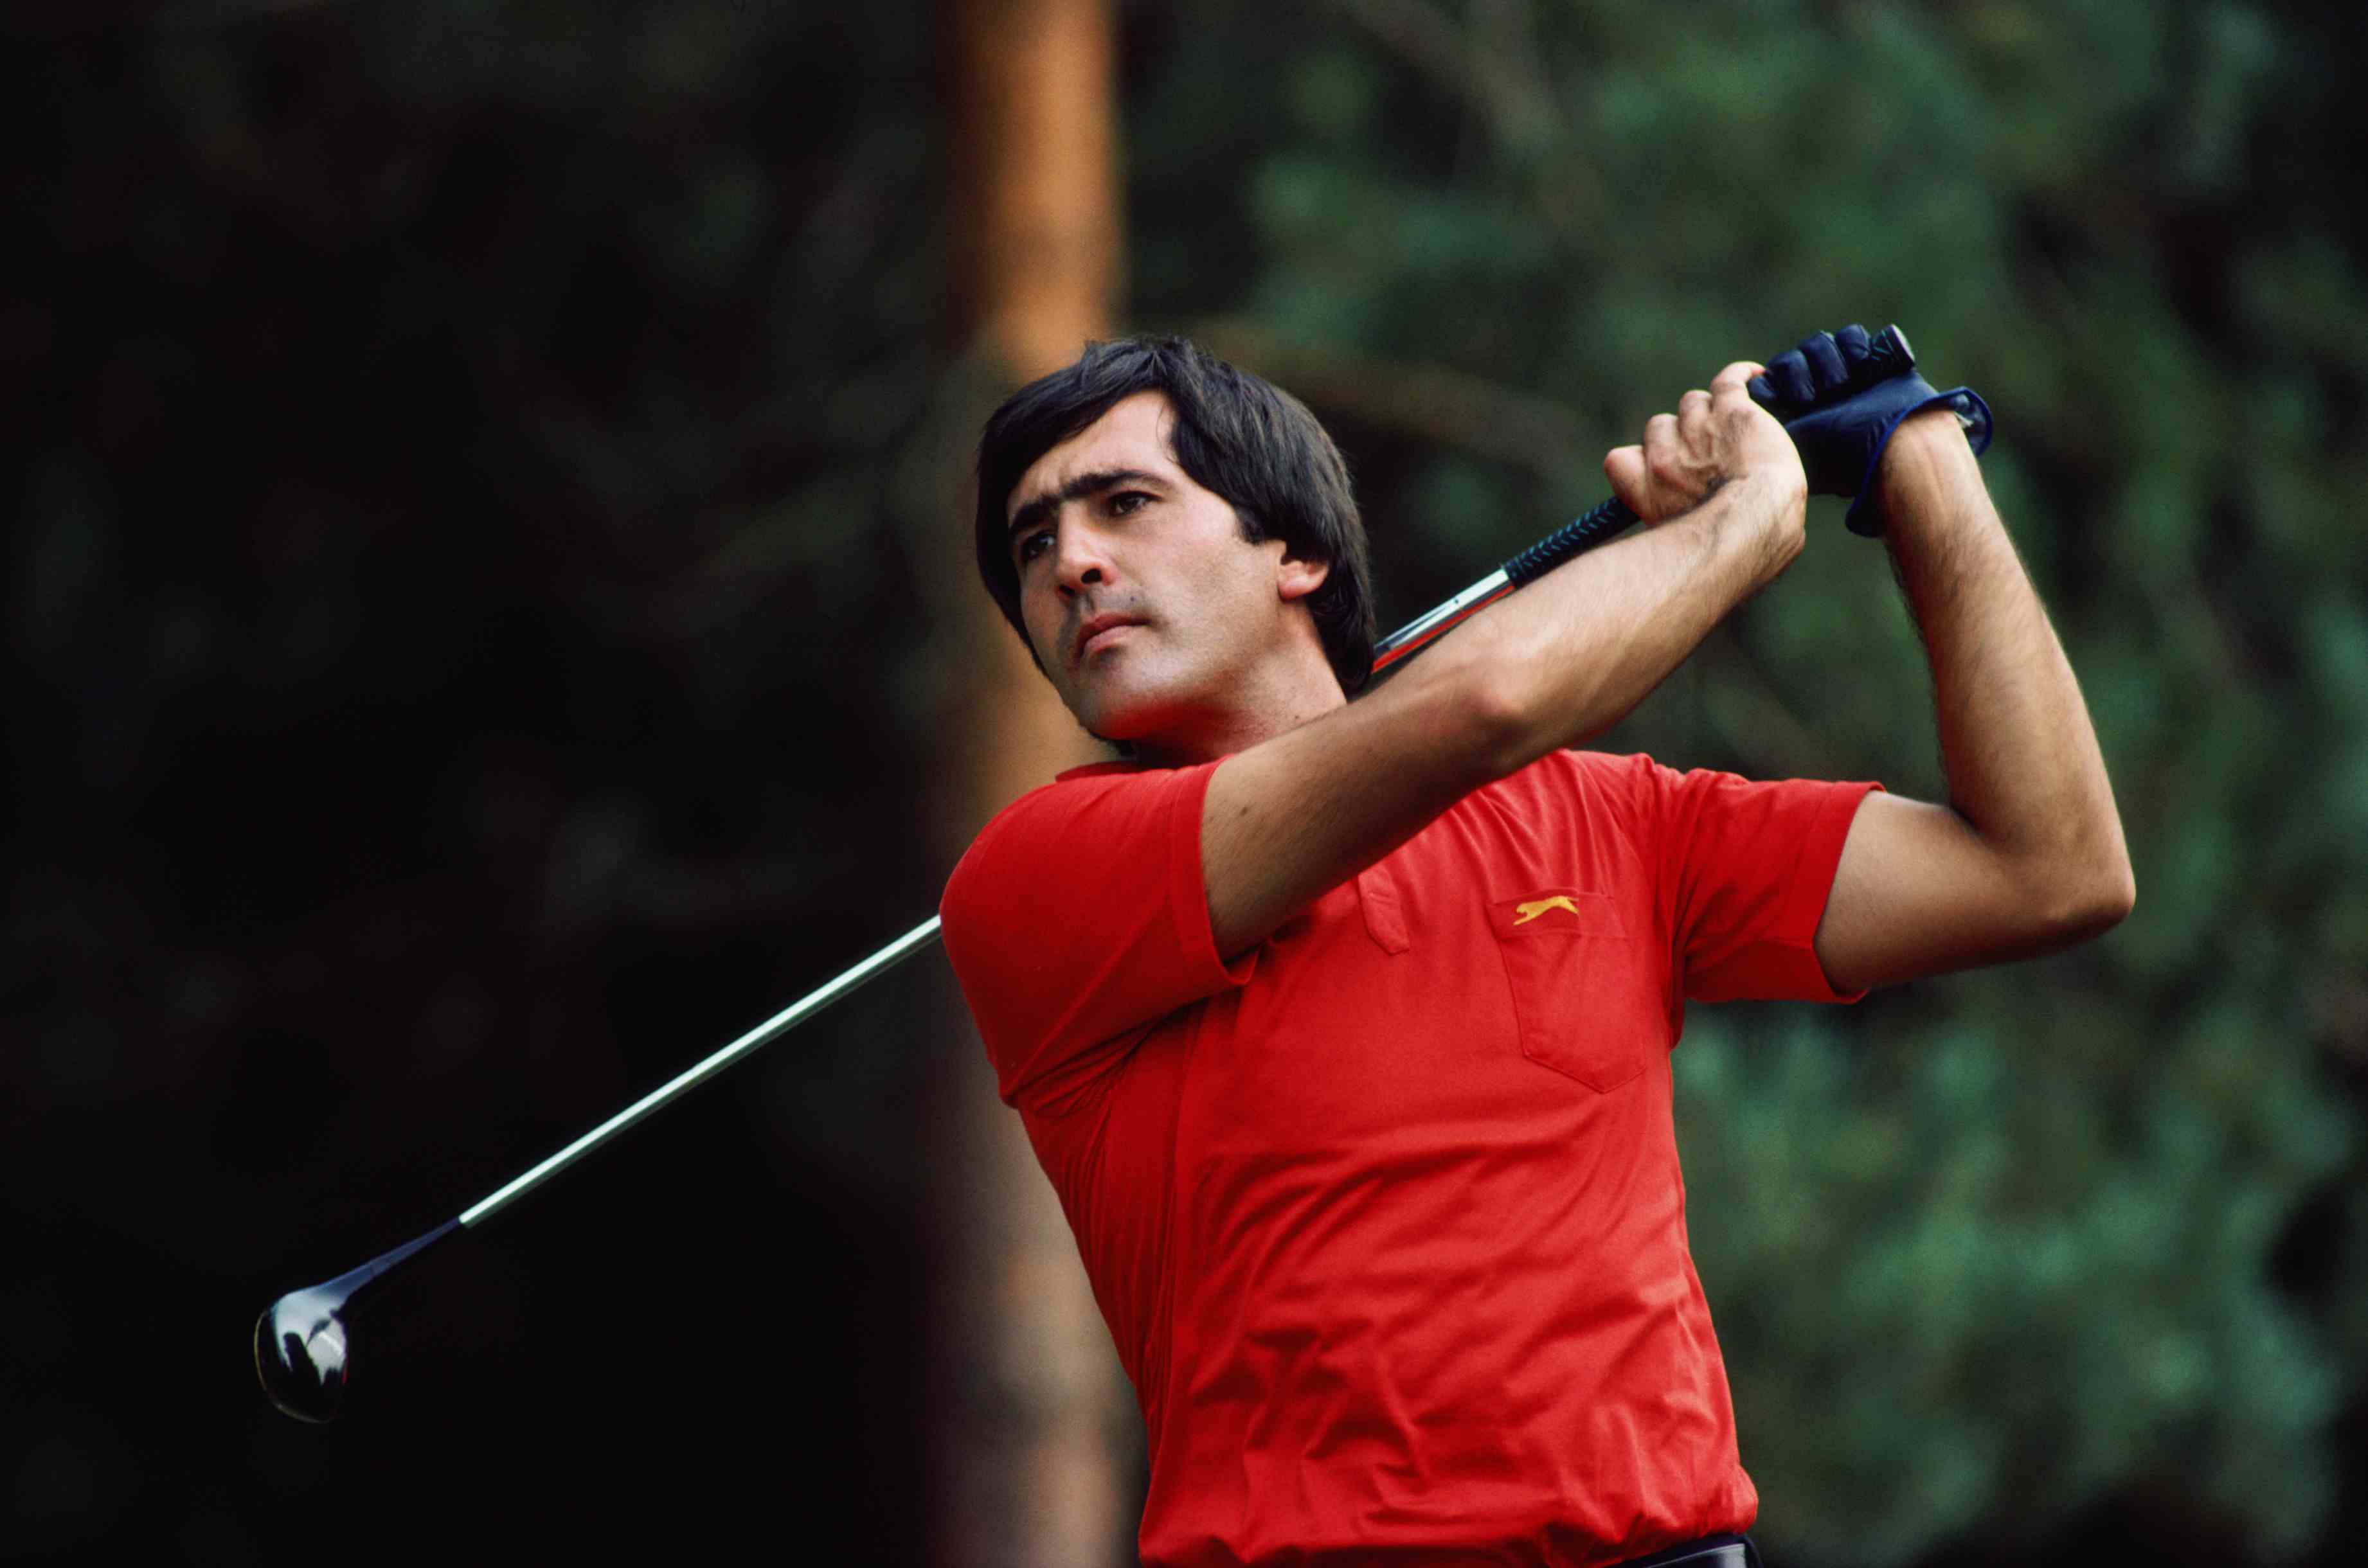 Seve Ballesteros competing in the European Open at Sunningdale Golf Club, Berkshire, 1983